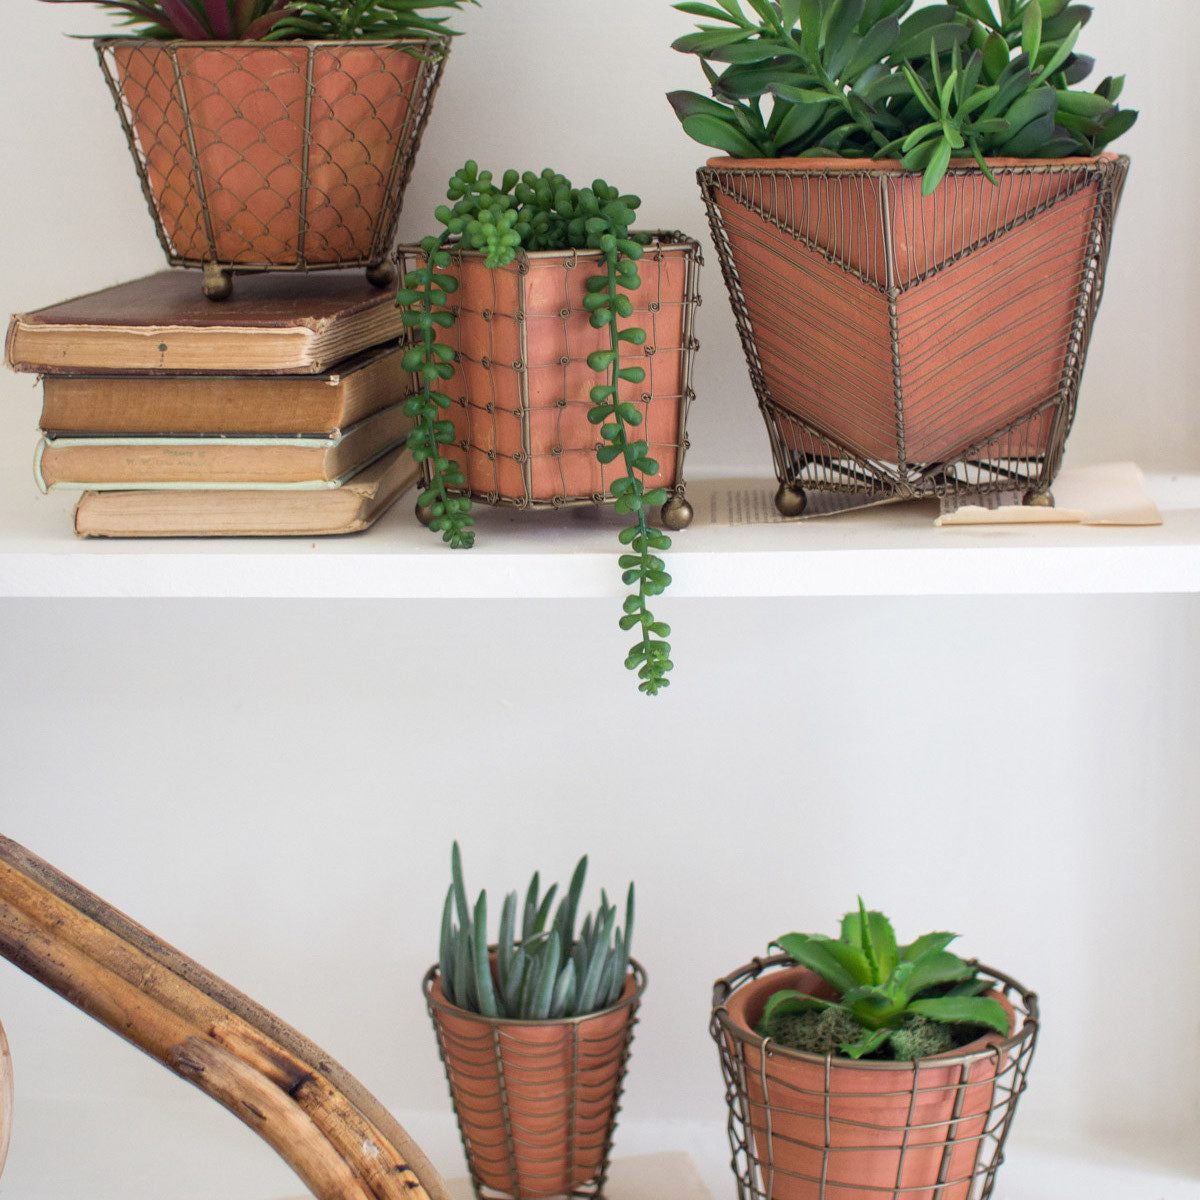 Terracotta Clay Planters with Metallic Wire Baskets